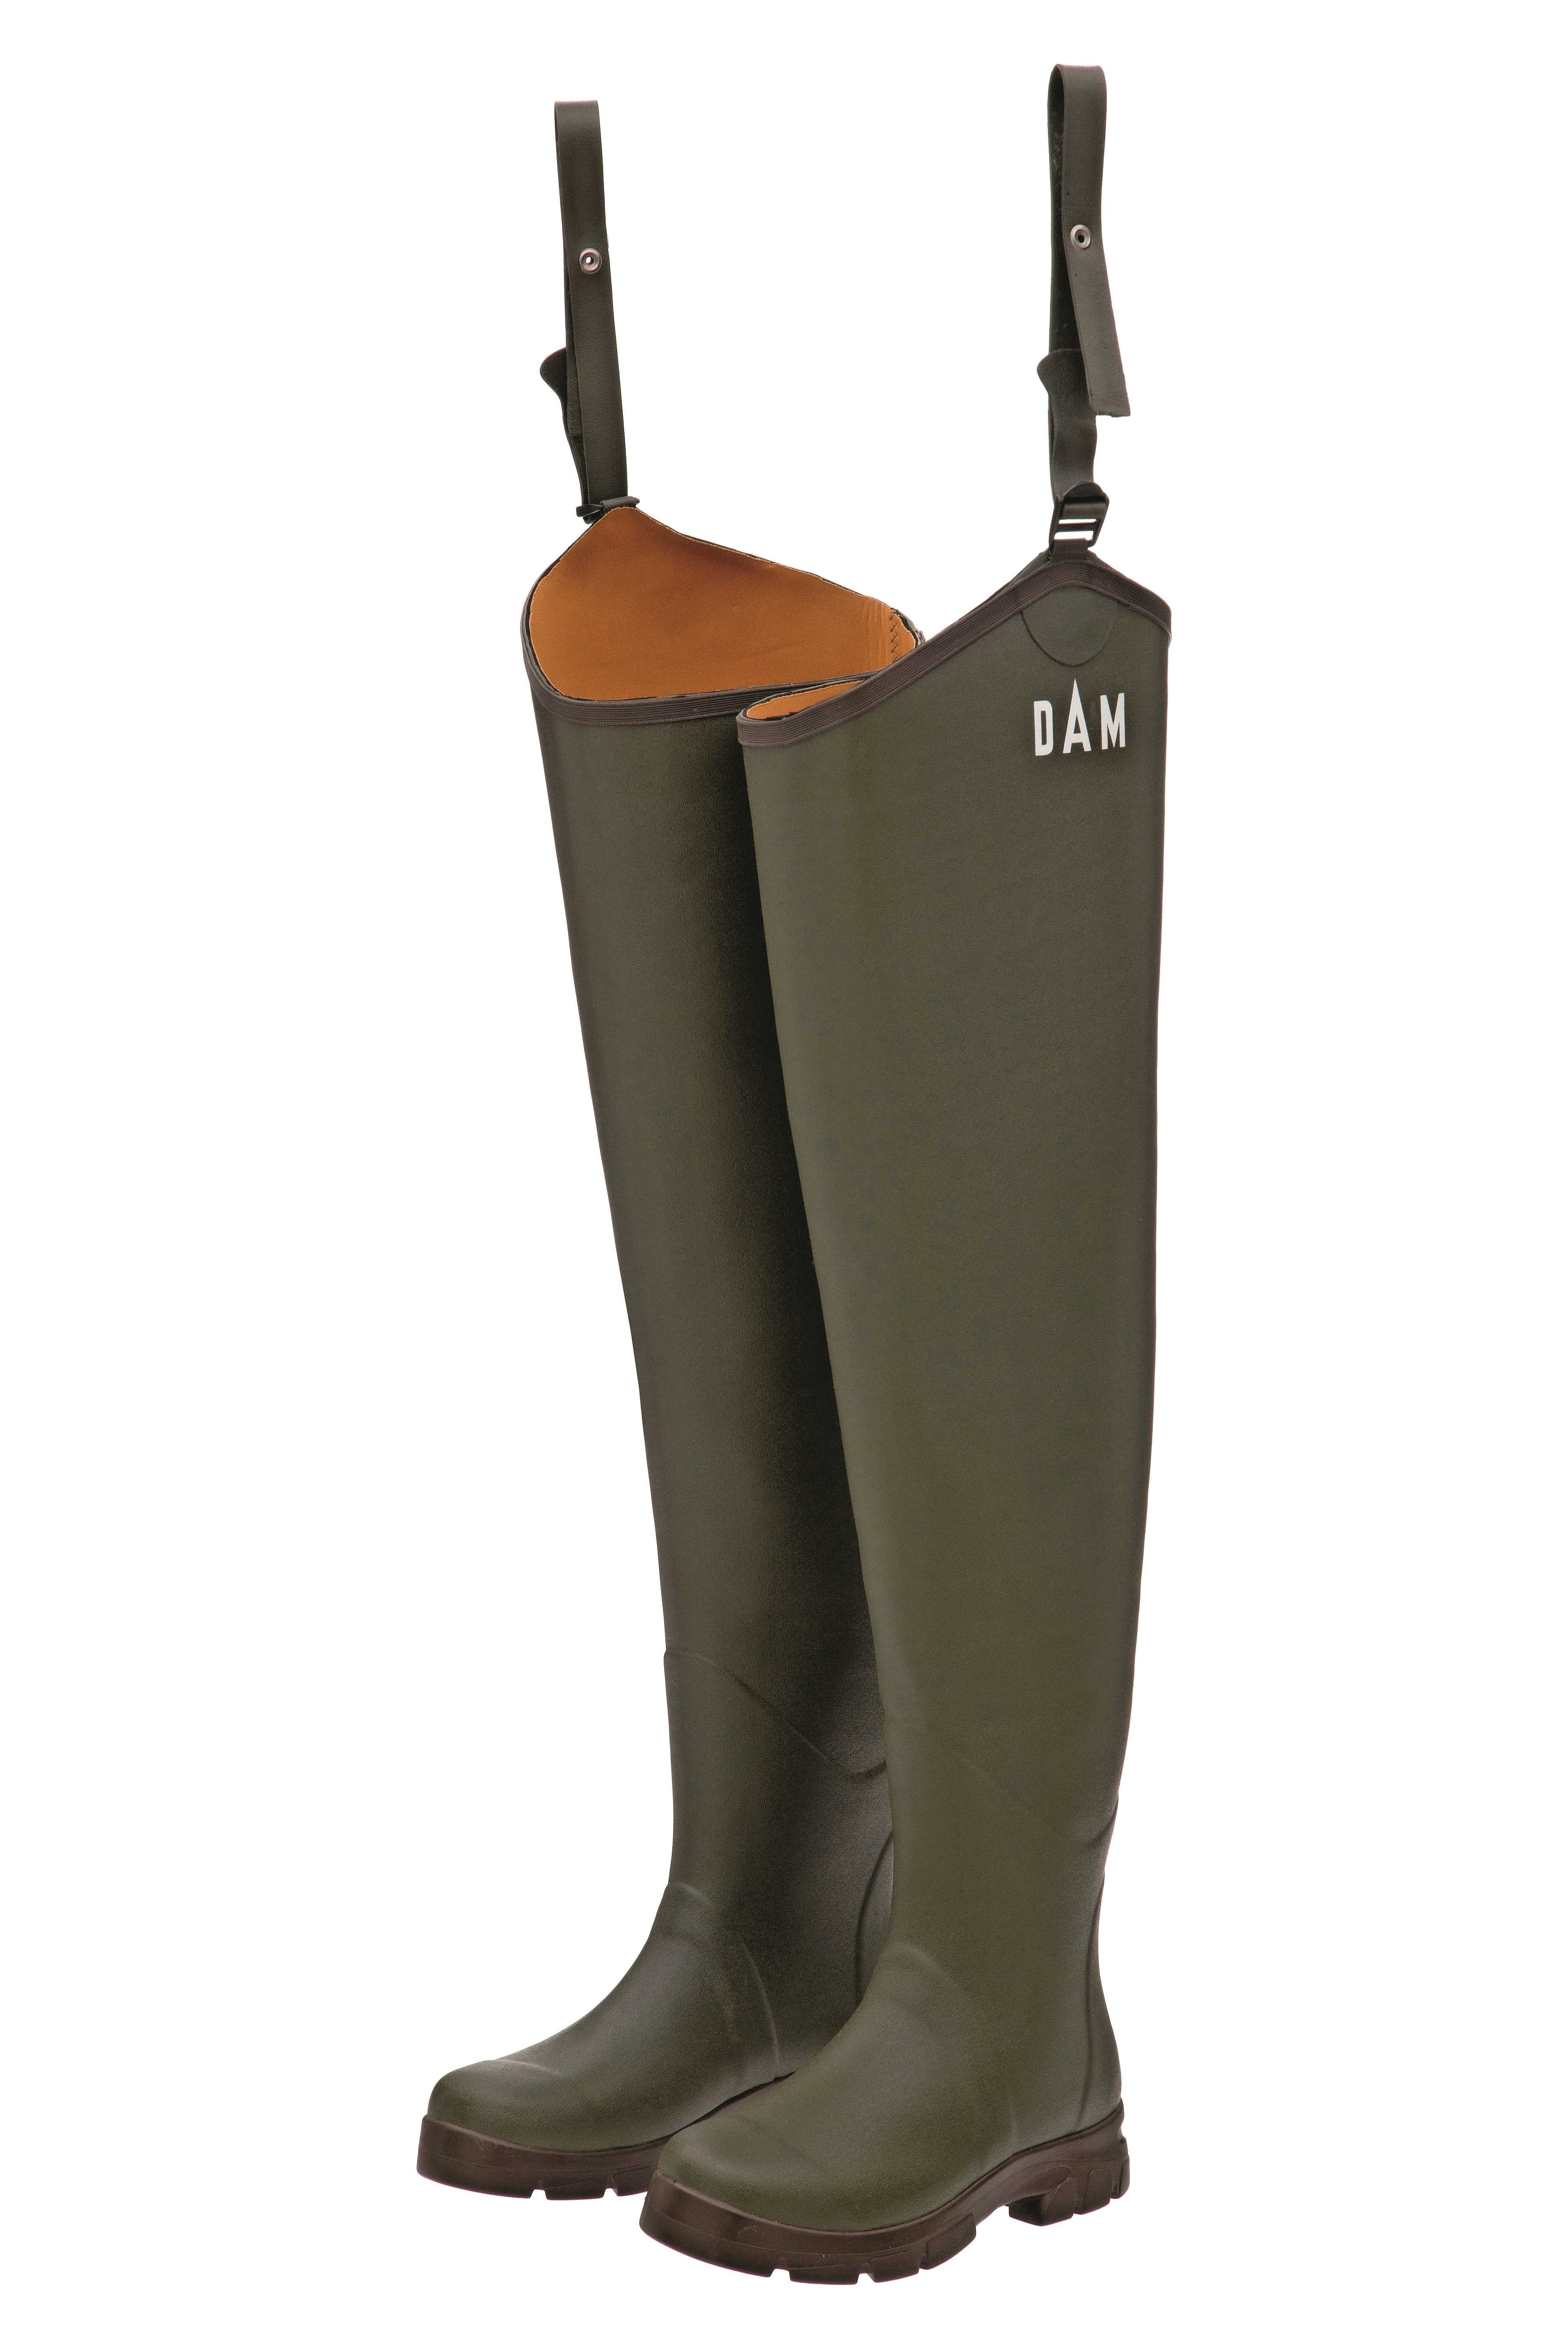 e27cc8b8bac DAM FLEX Rubber Hip Waders